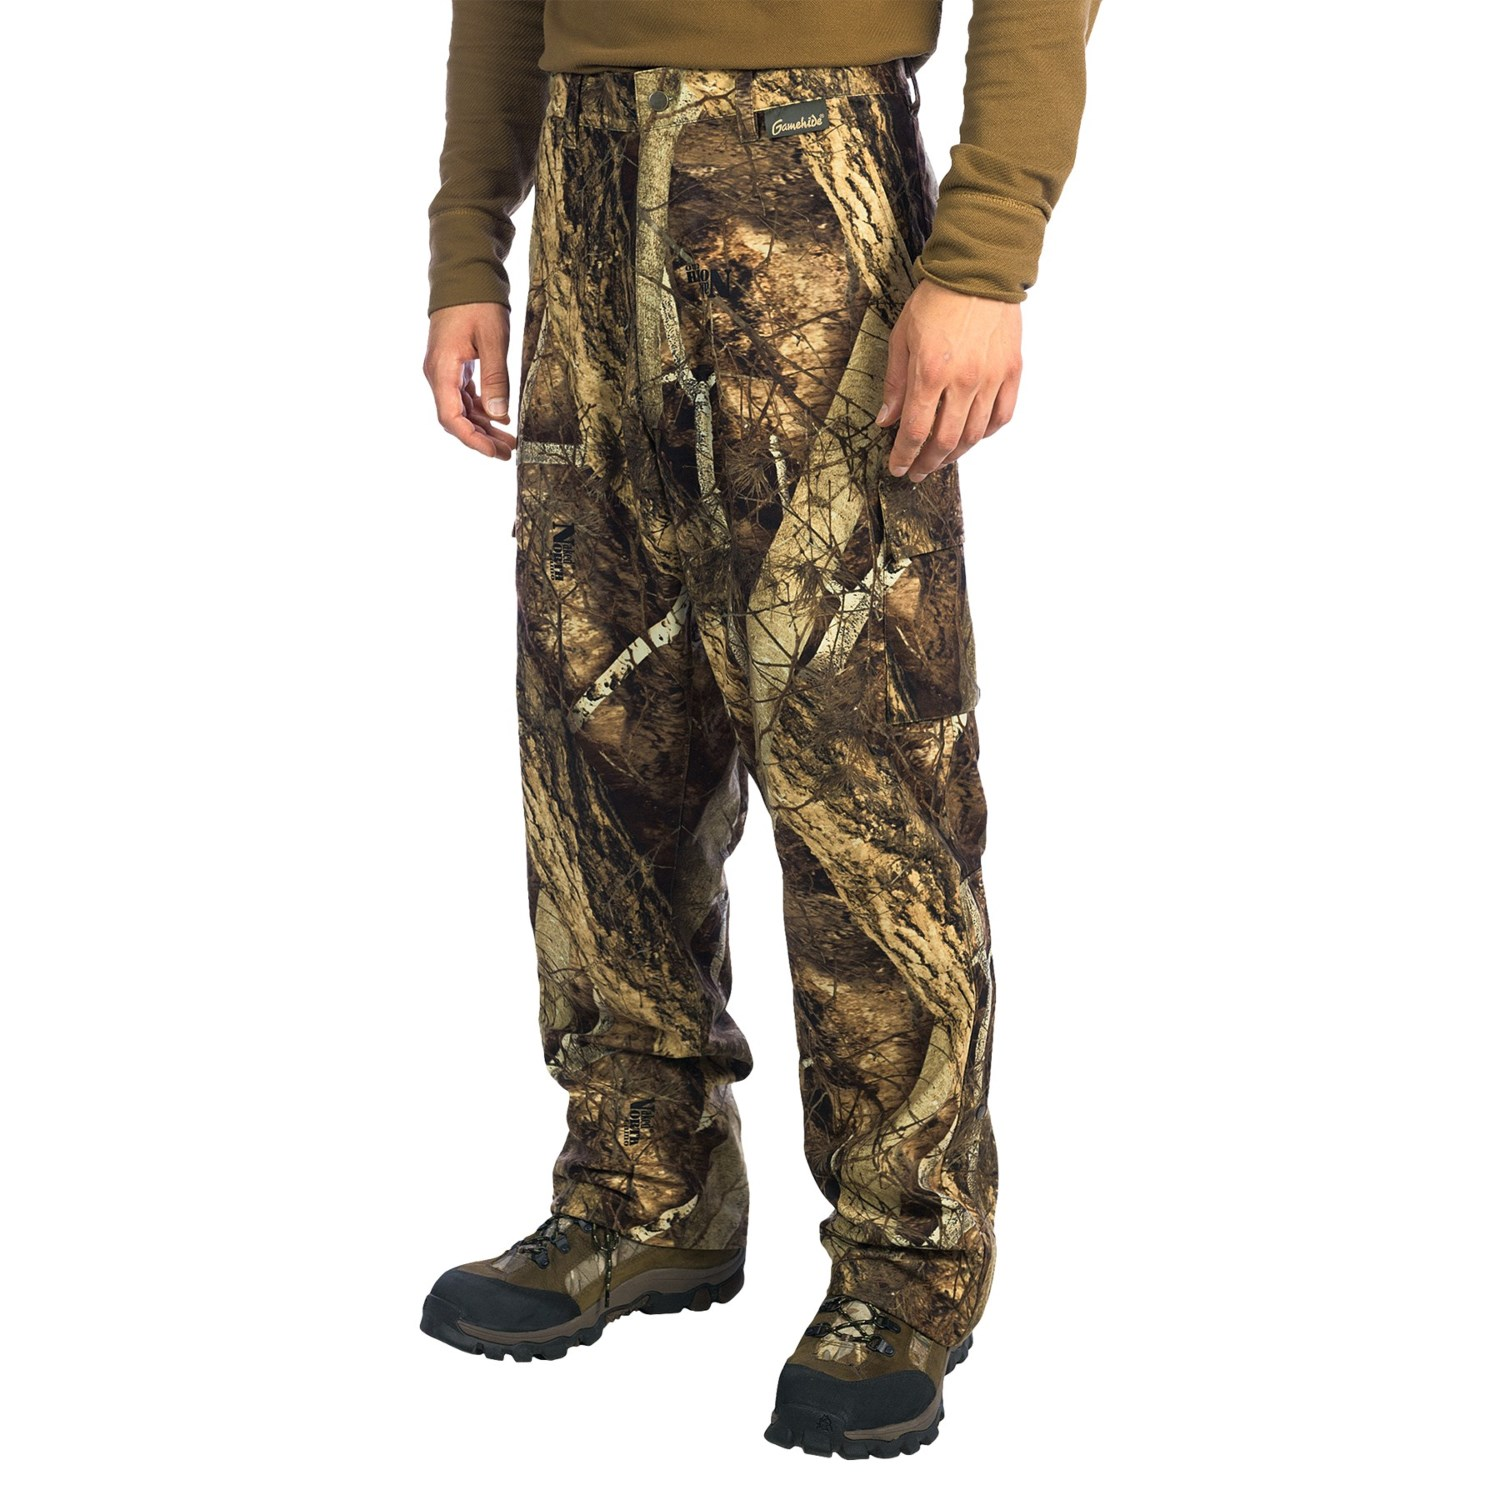 Womens hunting clothes. Online clothing stores